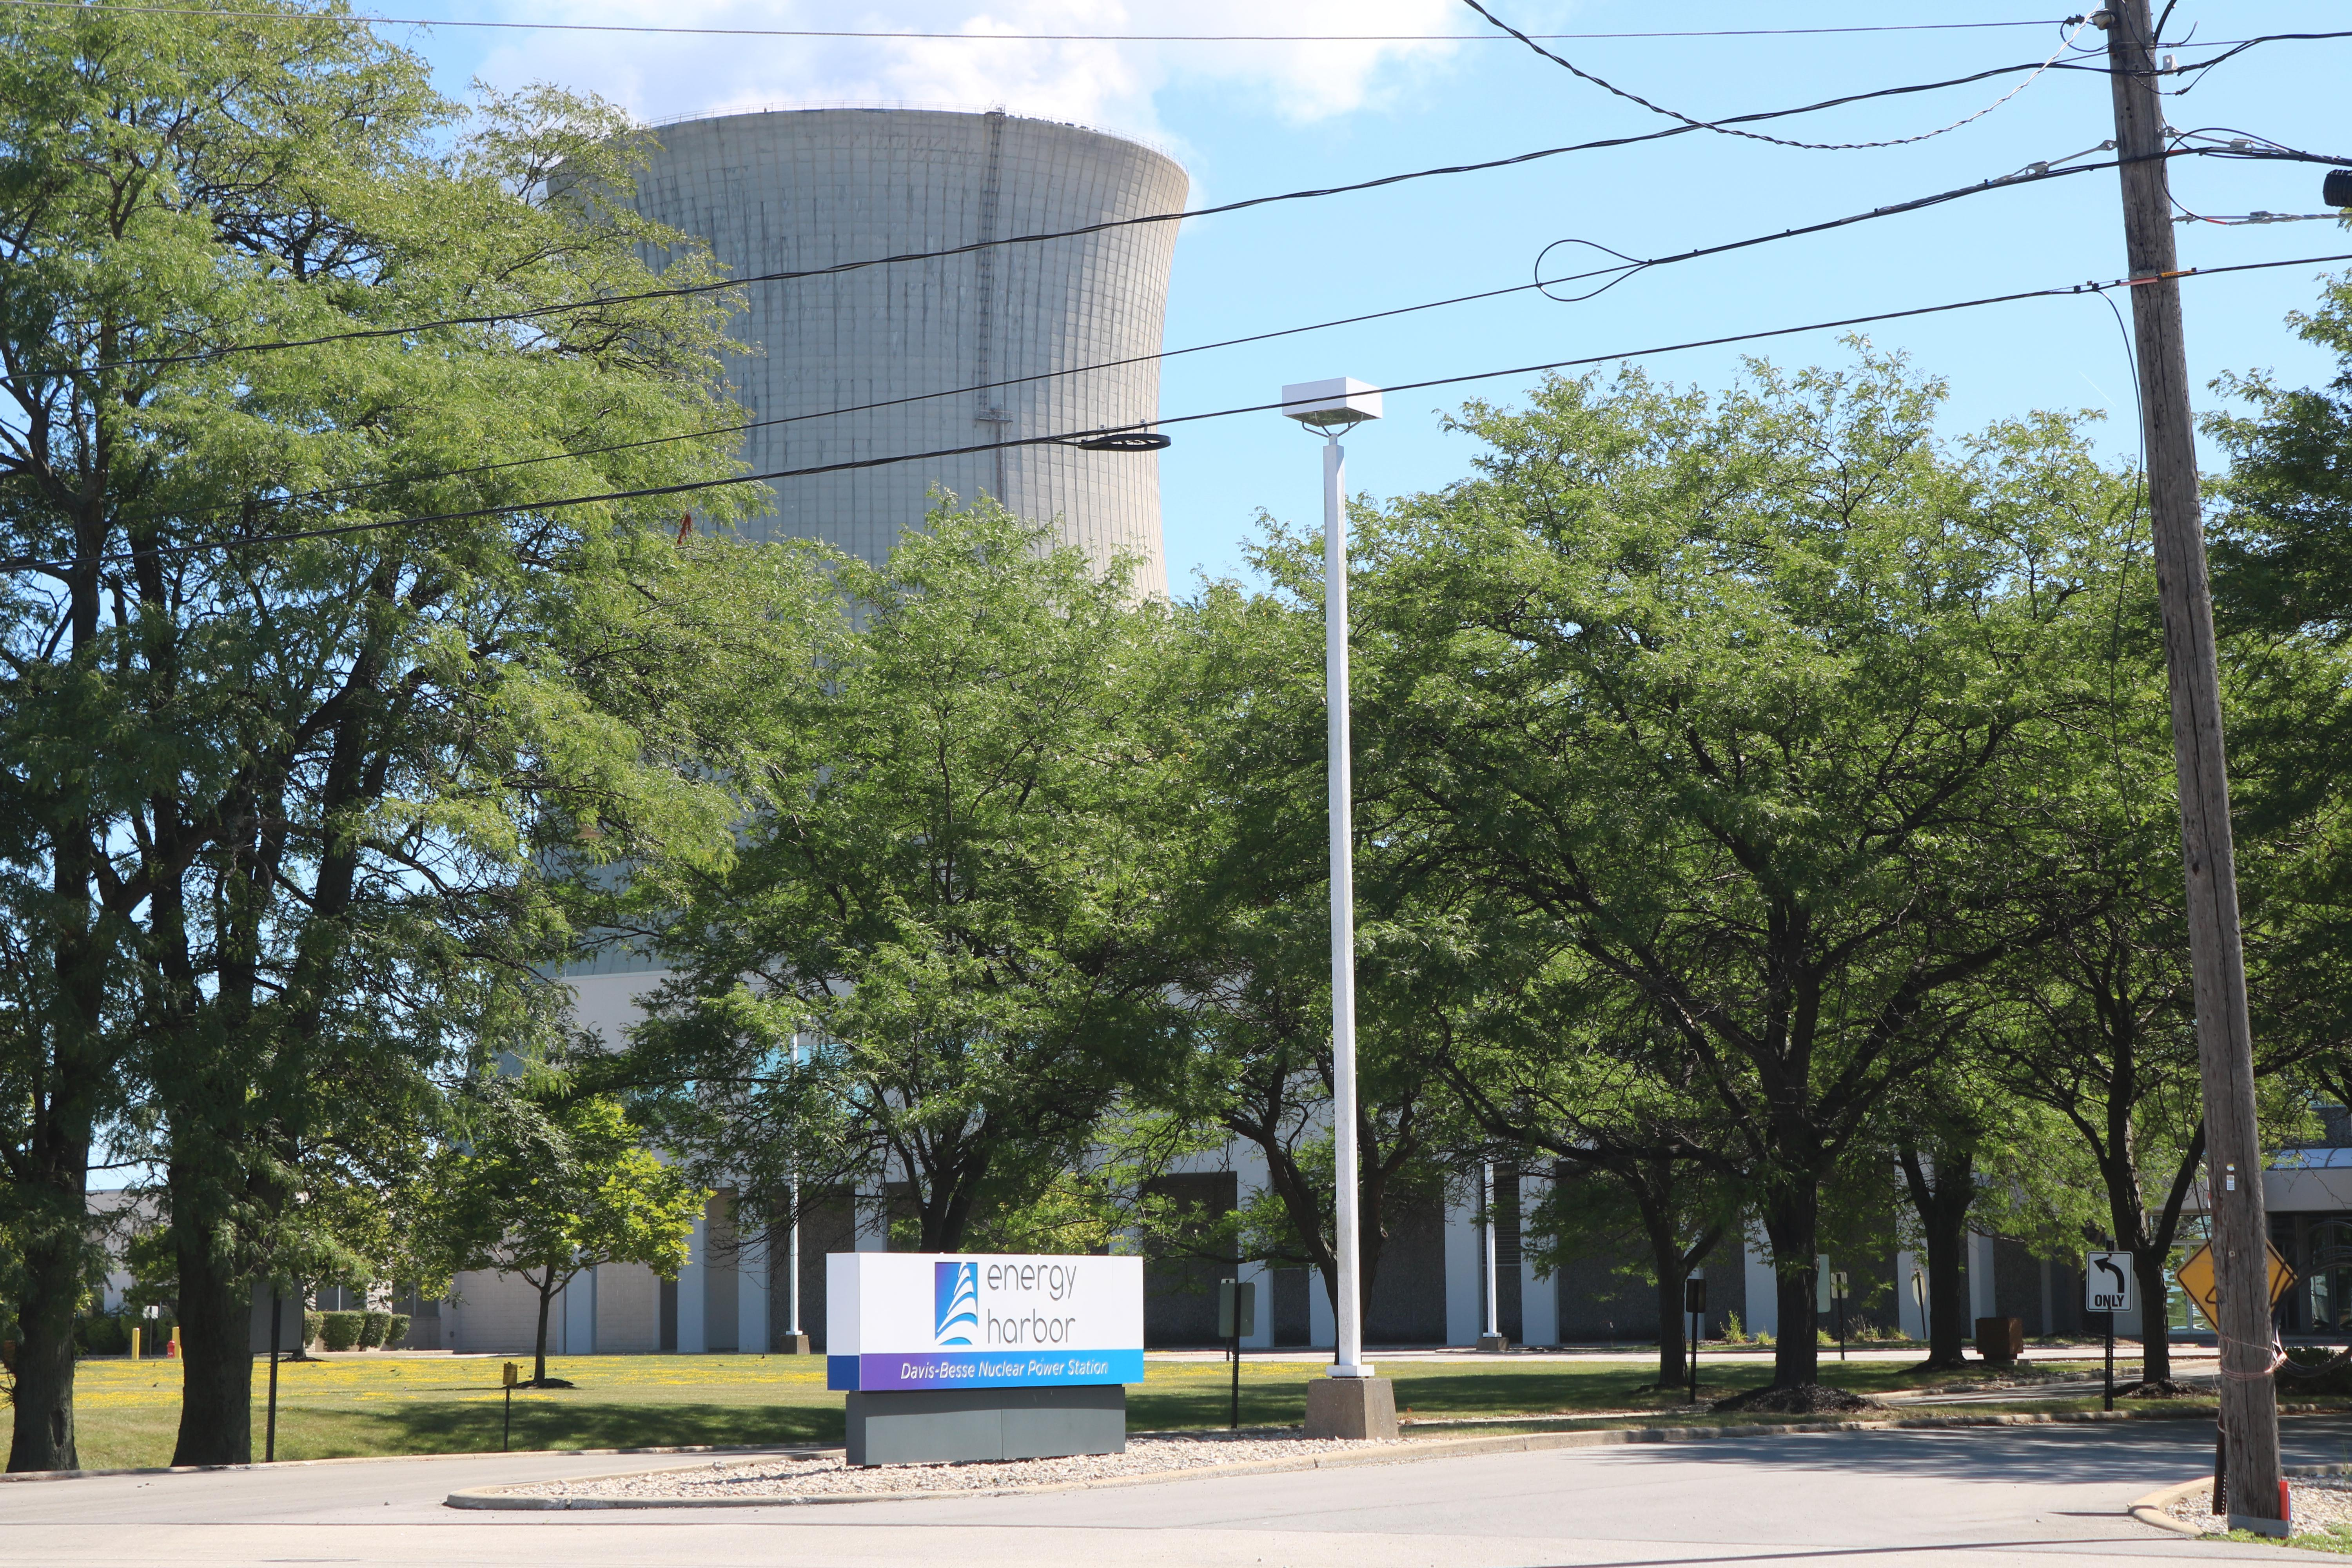 Akron-based Energy Harbor now owns the Davis-Bessie power plant near Port Clinton that is to benefit from House Bill 6 subsidies.